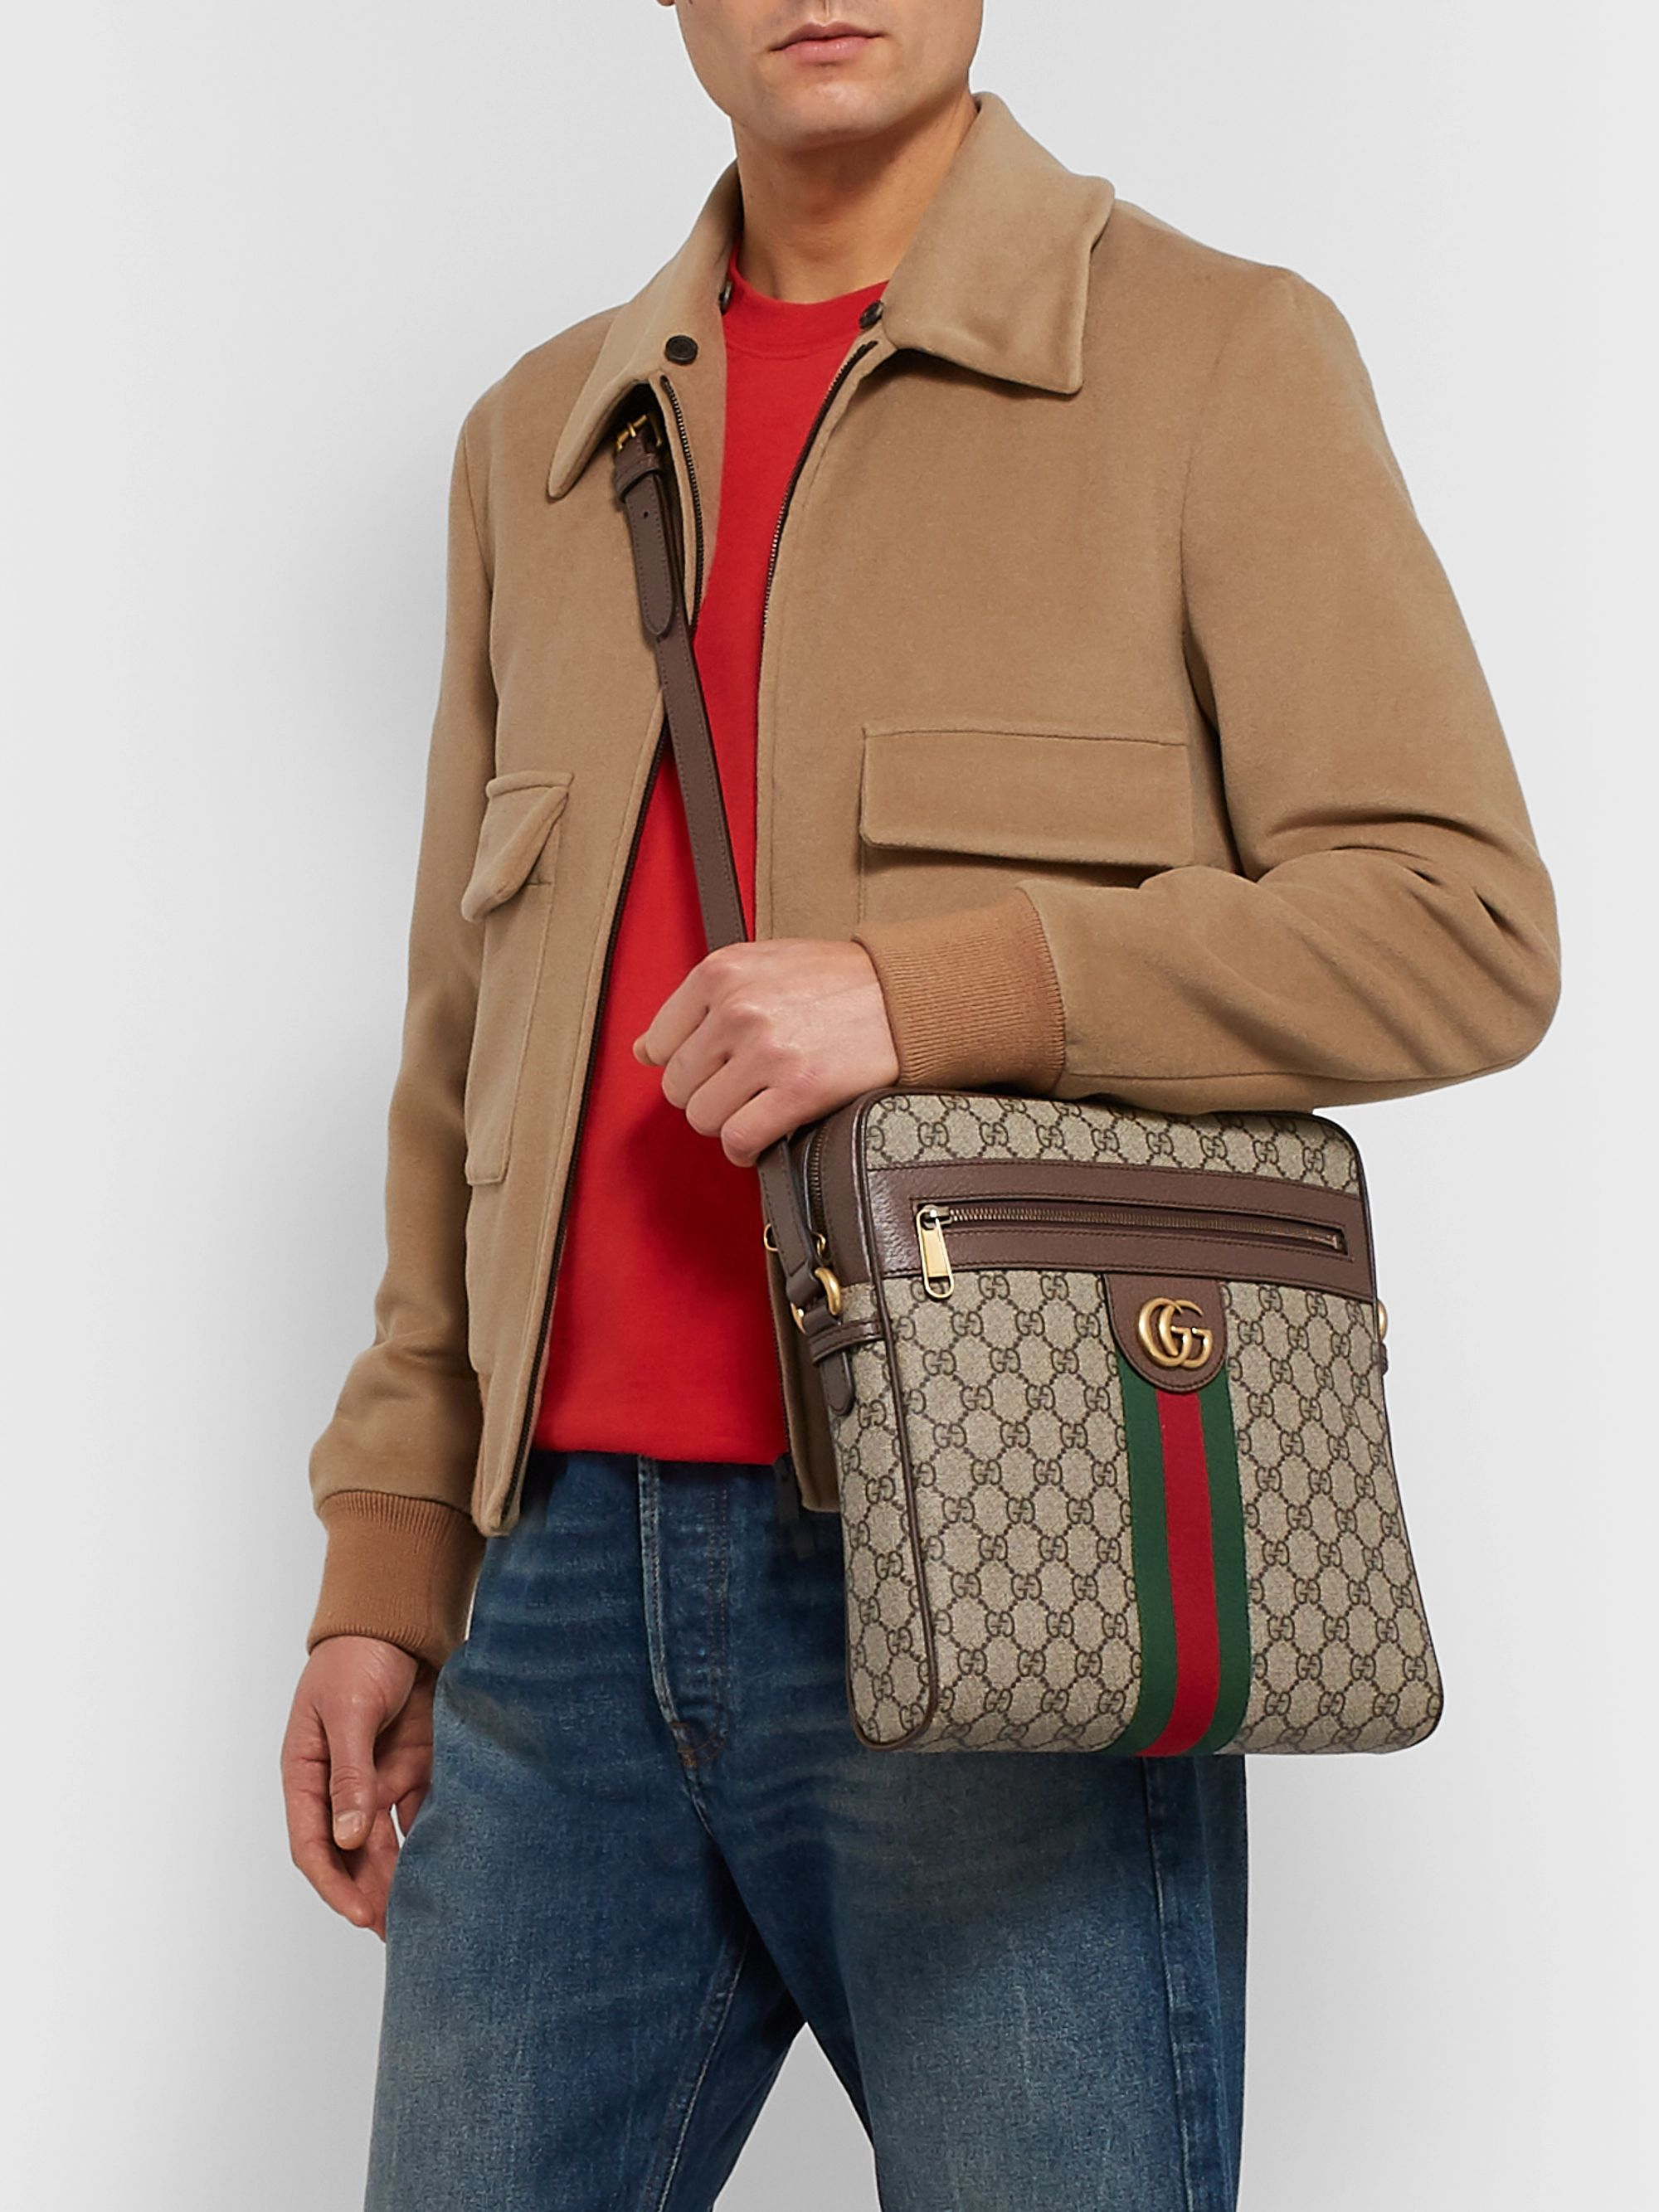 Gucci Ophidia Medium Leather-Trimmed Monogrammed Coated-Canvas Messenger Bag